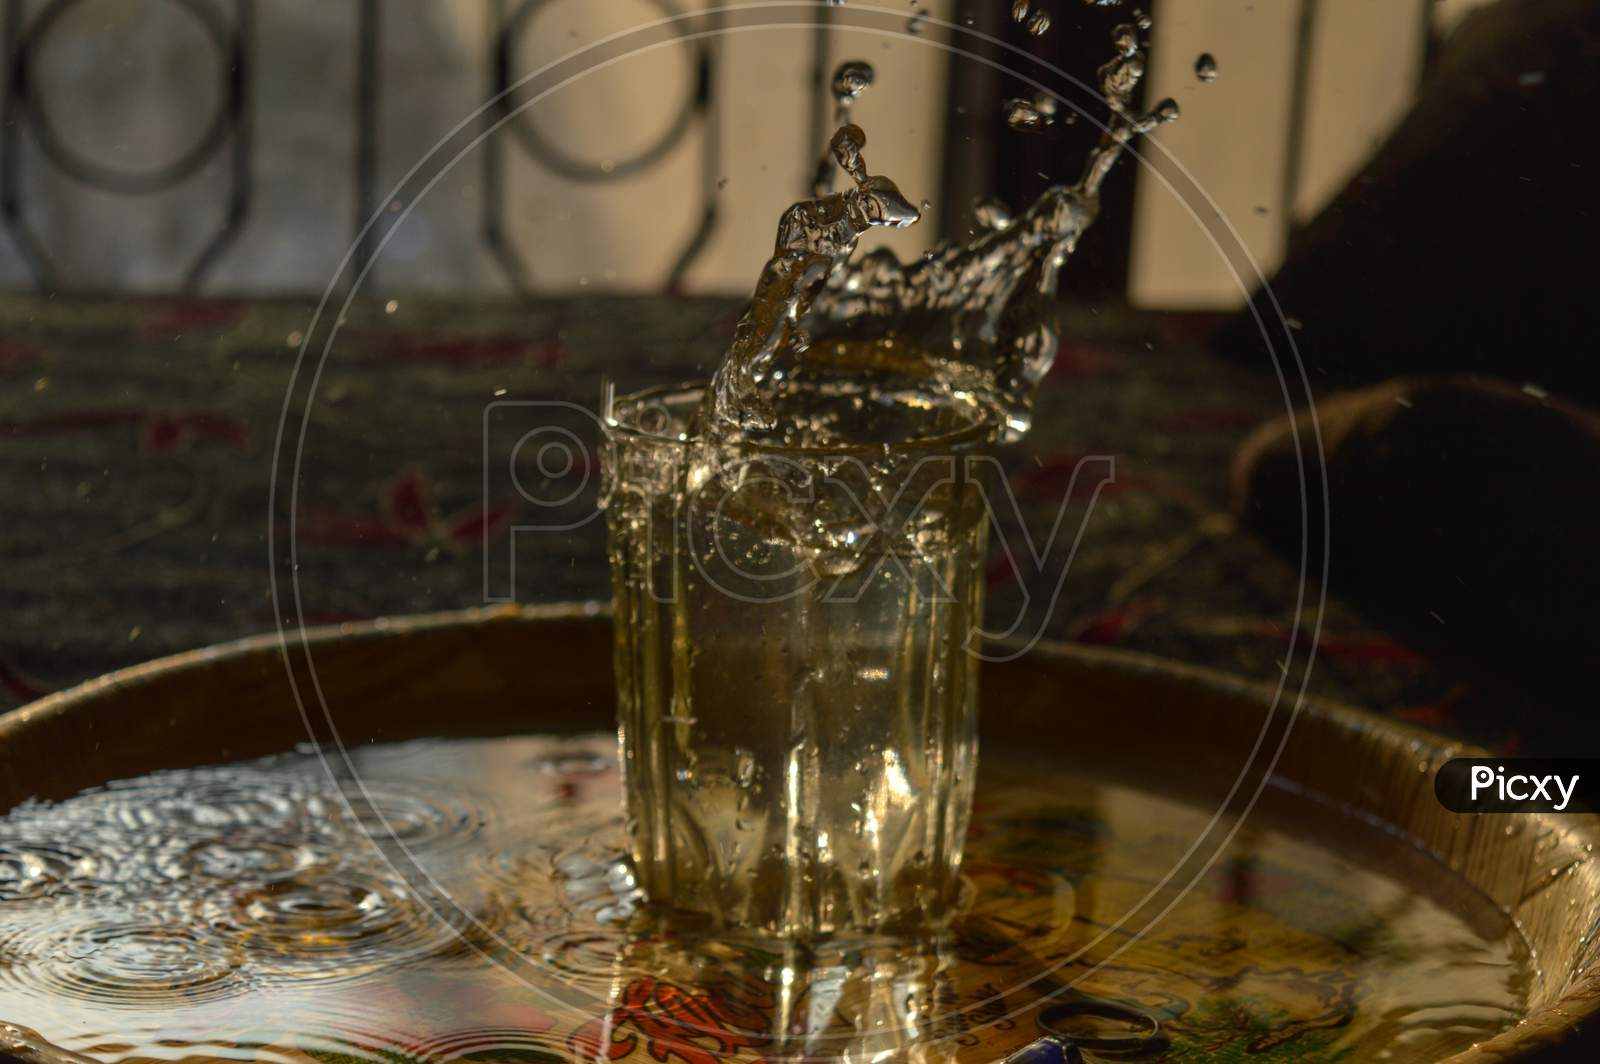 A Splash Photography Of Water Of Glass At Sunset Time.